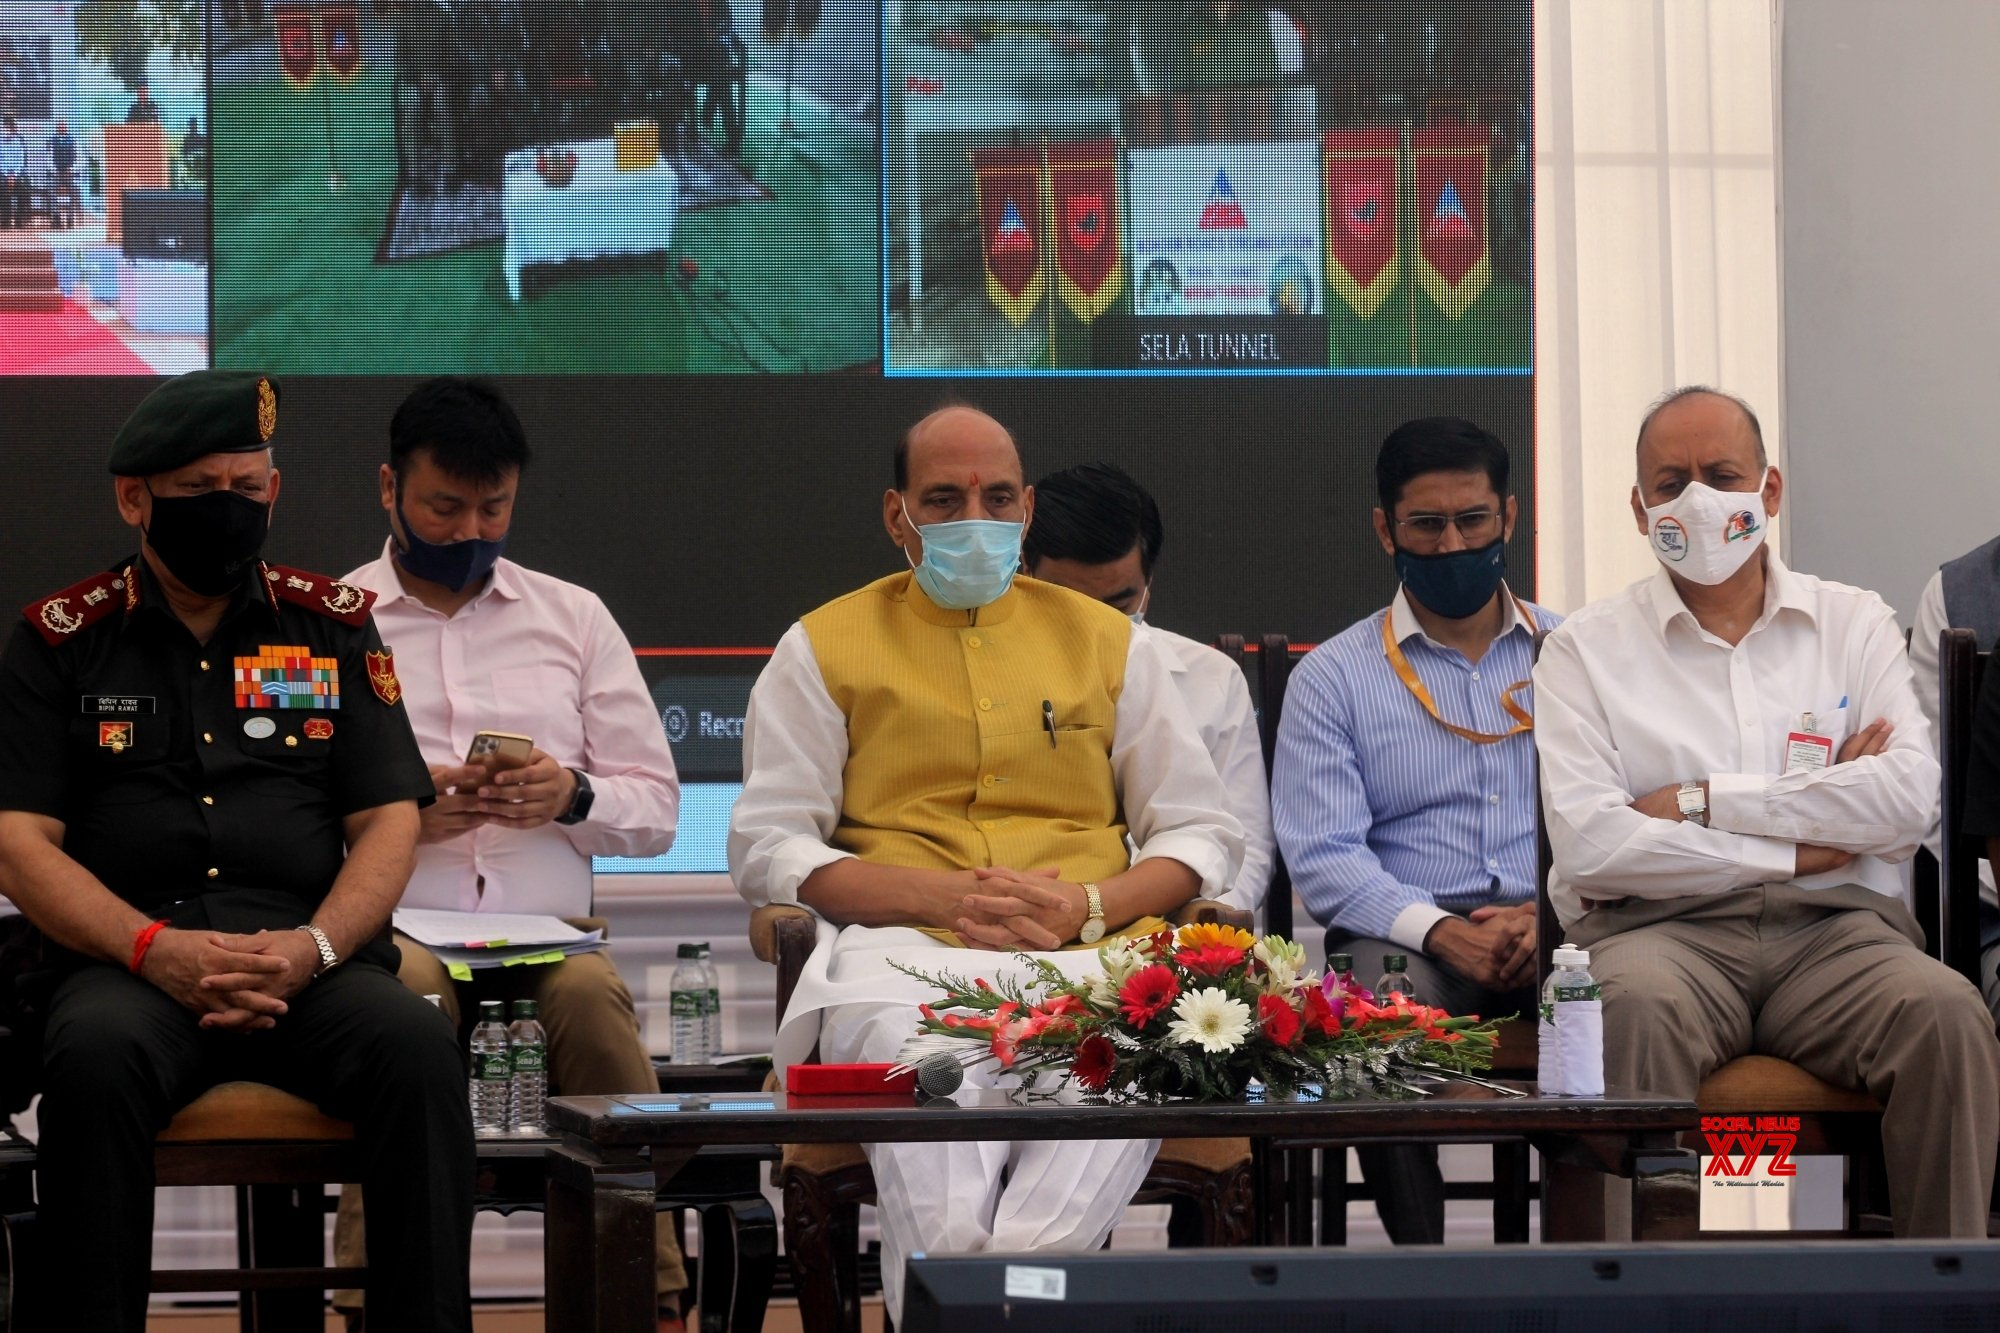 New Delhi:Union Defence Minister Rajnath Singh during flag off ceremony of the Border Road Organization (BRO) Motorcycle Expedition #Gallery